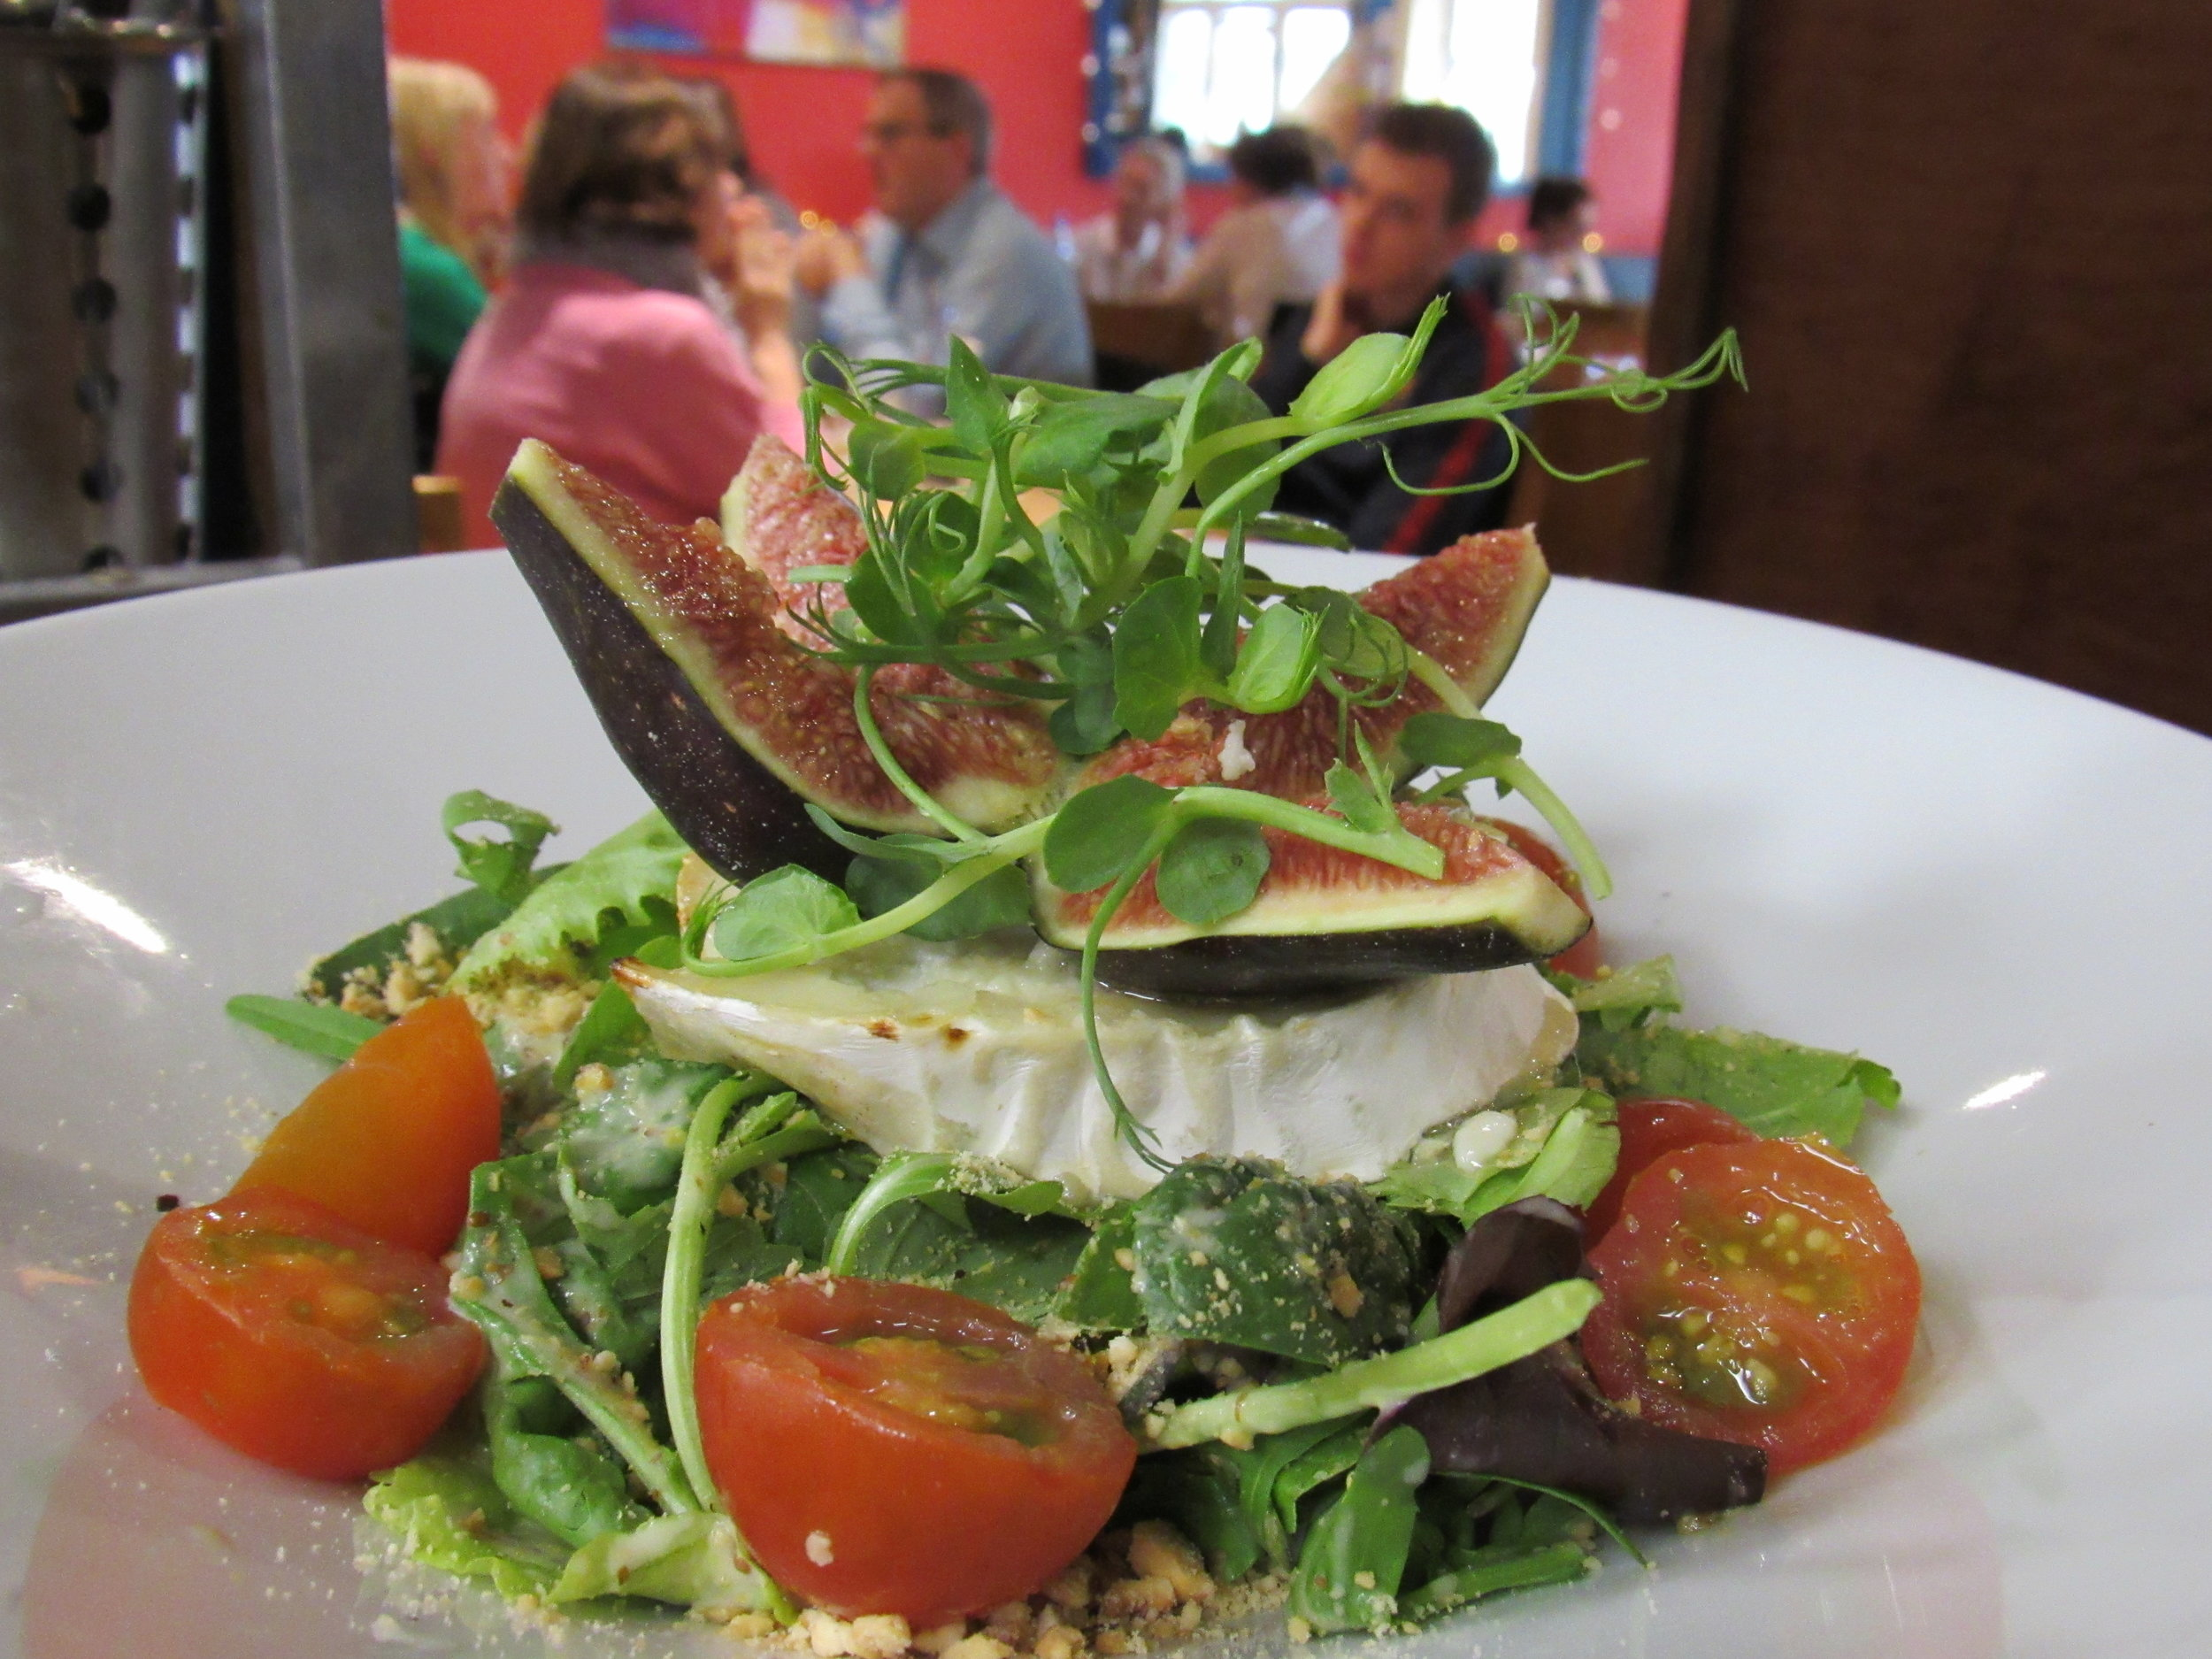 Goats cheese salad at twenty2, Drumcondra